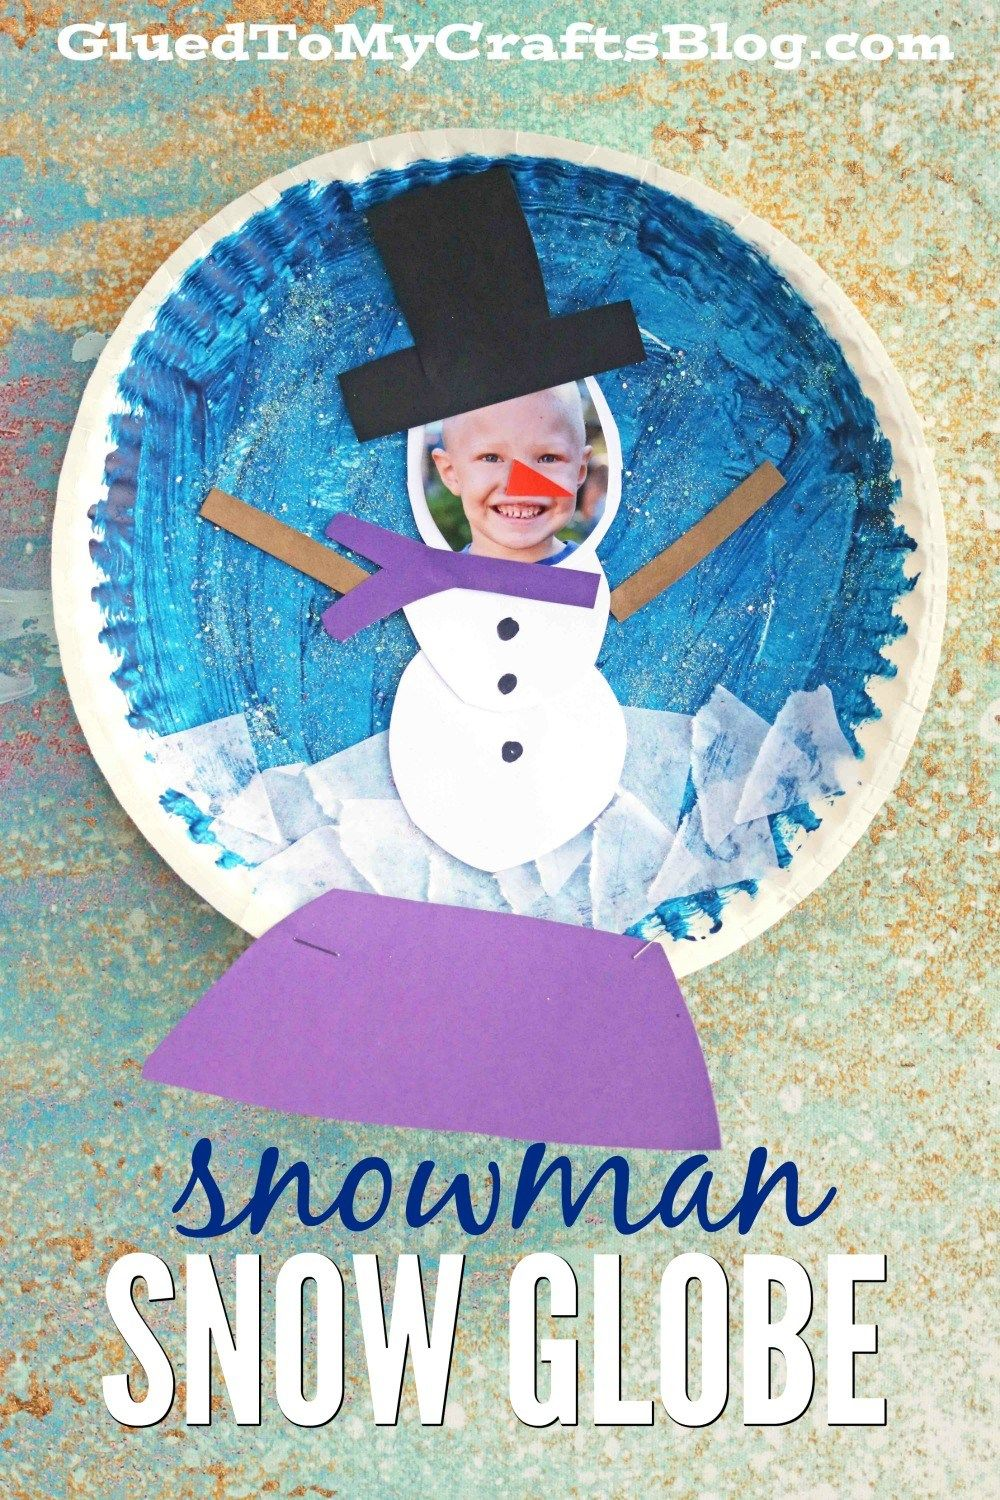 Personalized paper plate snowman snow globe kid craft snowman personalized paper plate snowman snow globe kid craft jeuxipadfo Gallery